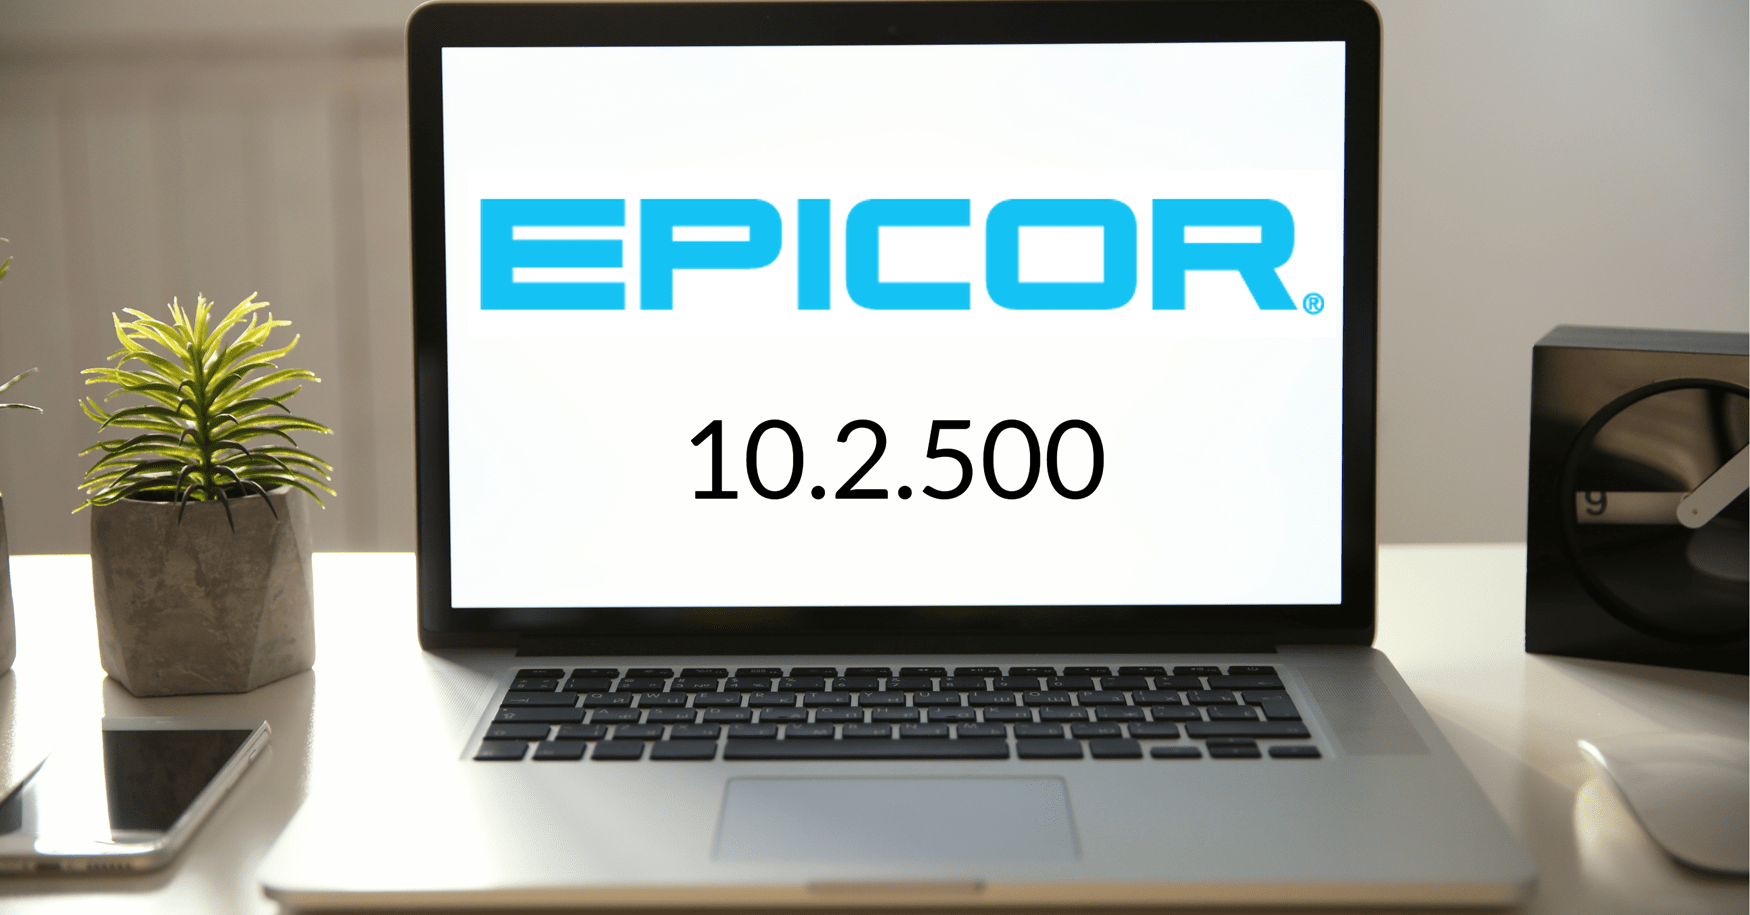 Overview of Epicor ERP 10.2.500